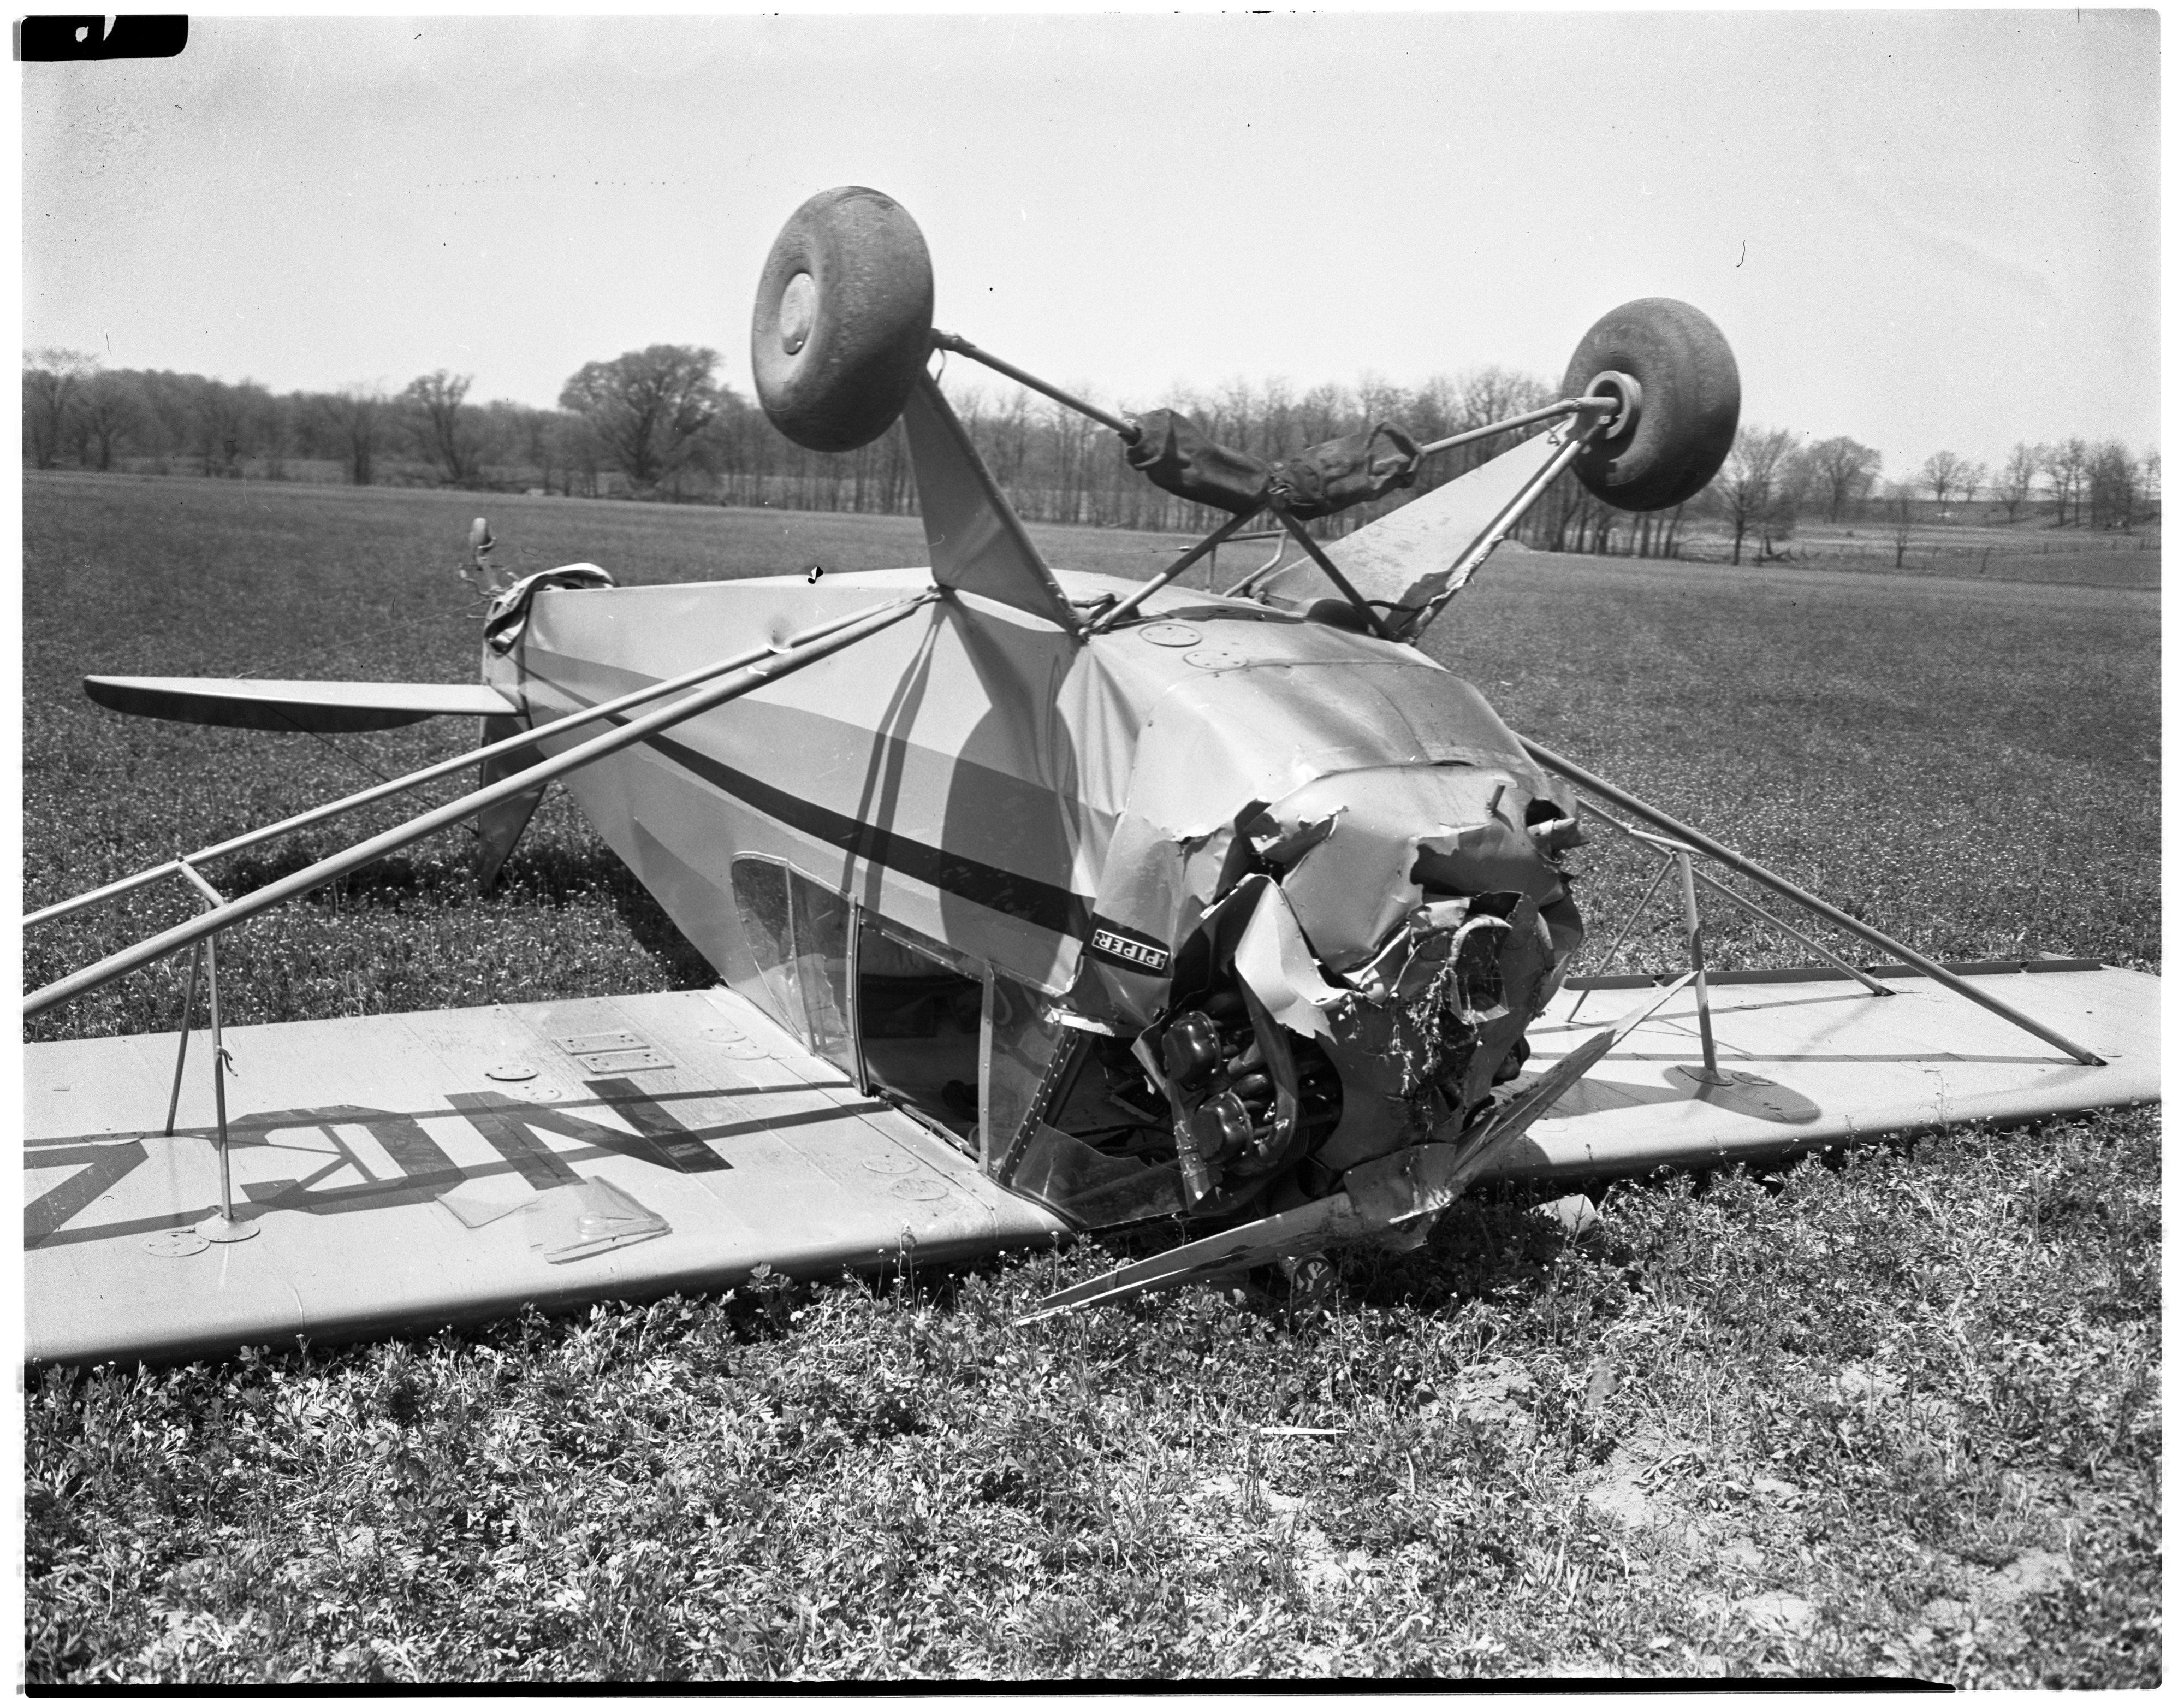 Argus Camera President and Pilot Injured In Plane Crash, April 1946 image